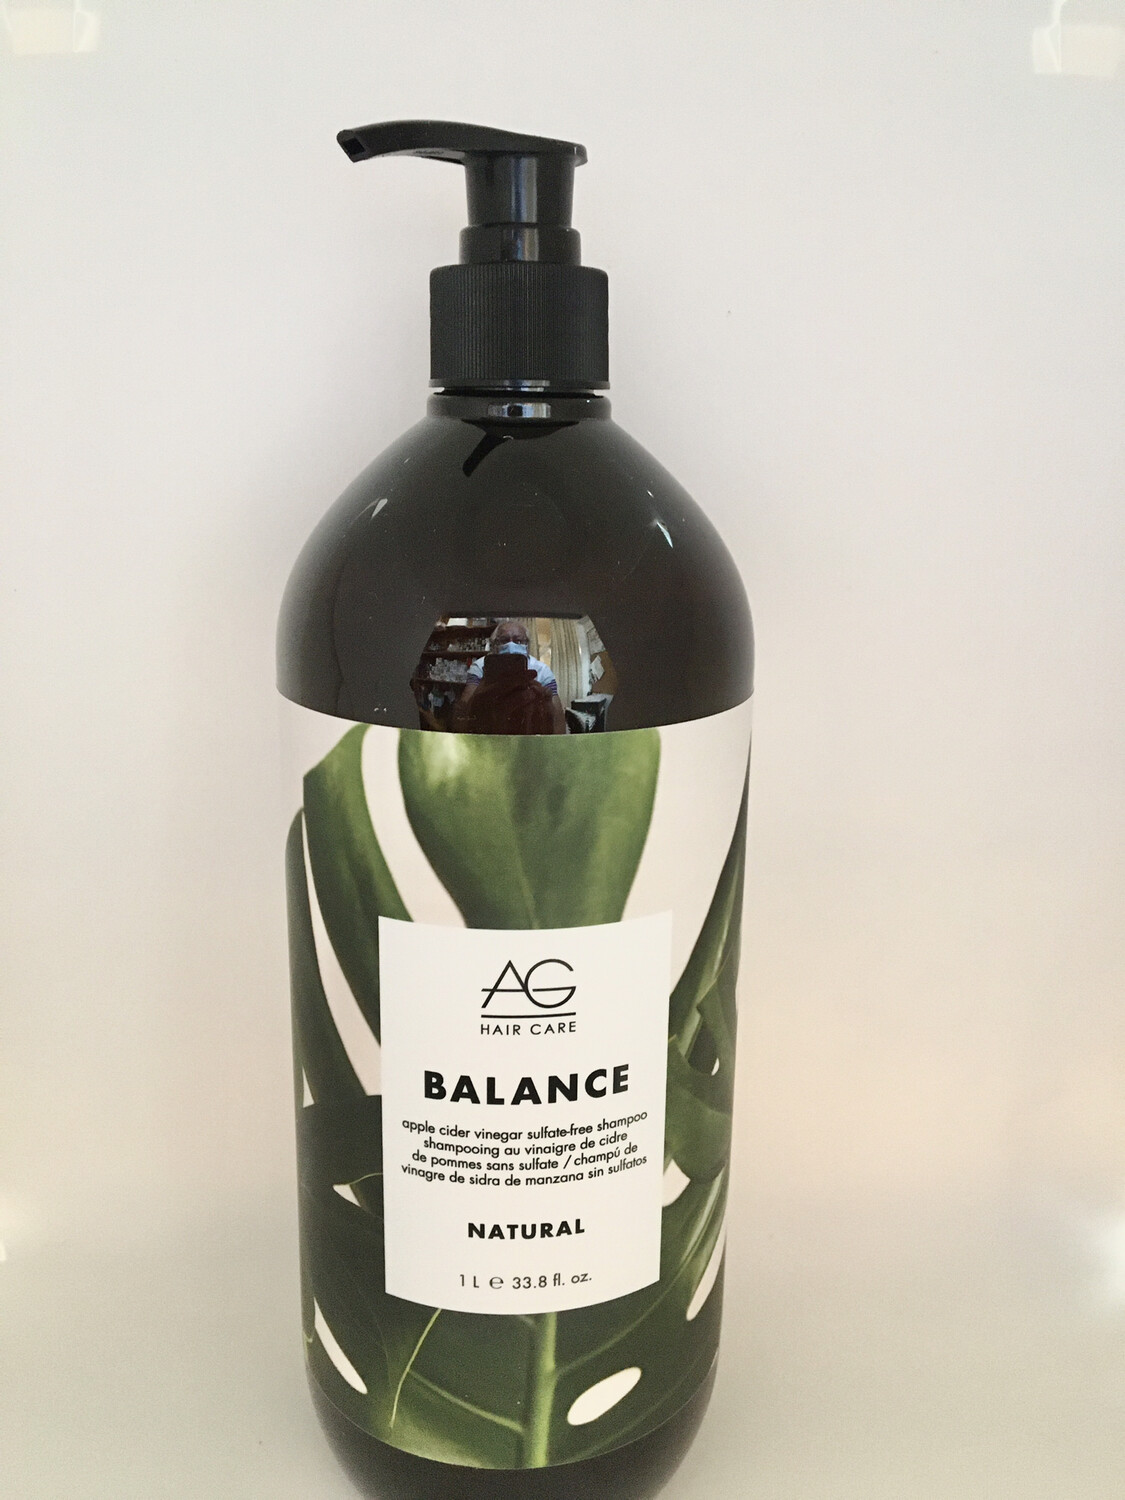 AG Natural - Balance Shampoo 33.8 oz